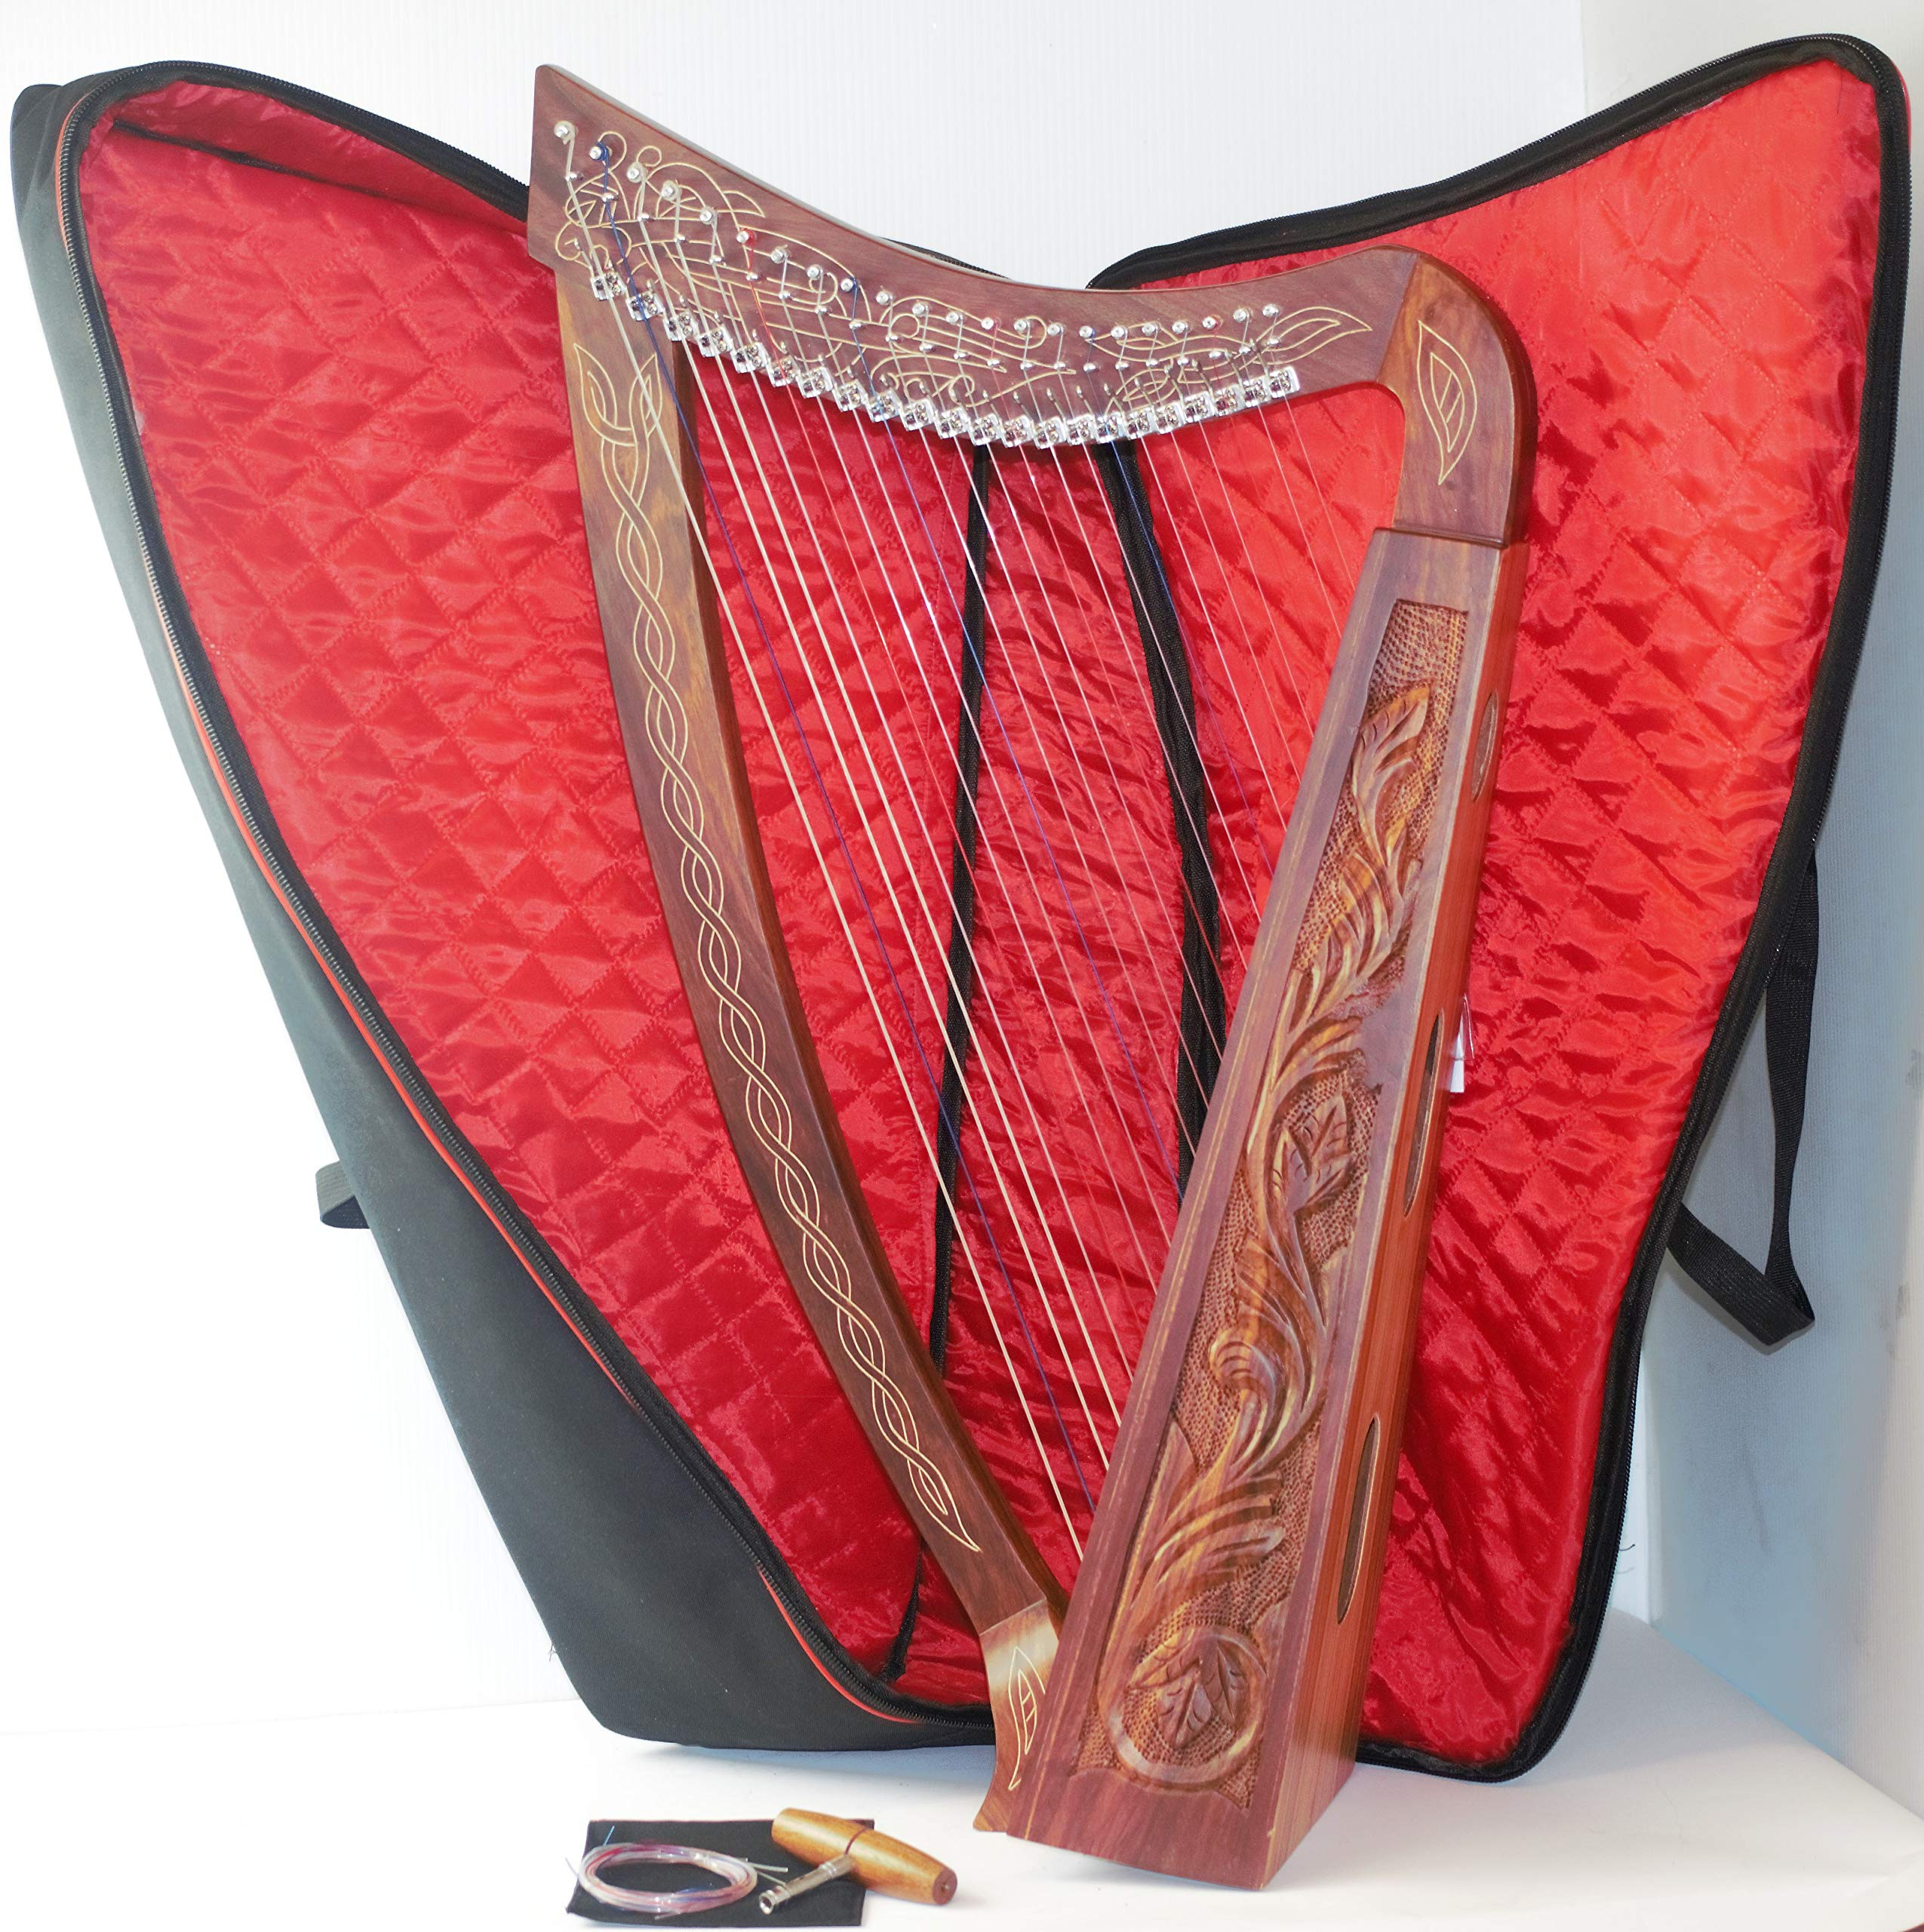 22 Nylon Strings Lever Harp Metal hardware Solid Wood with hand Engraved with Free Carrying Case